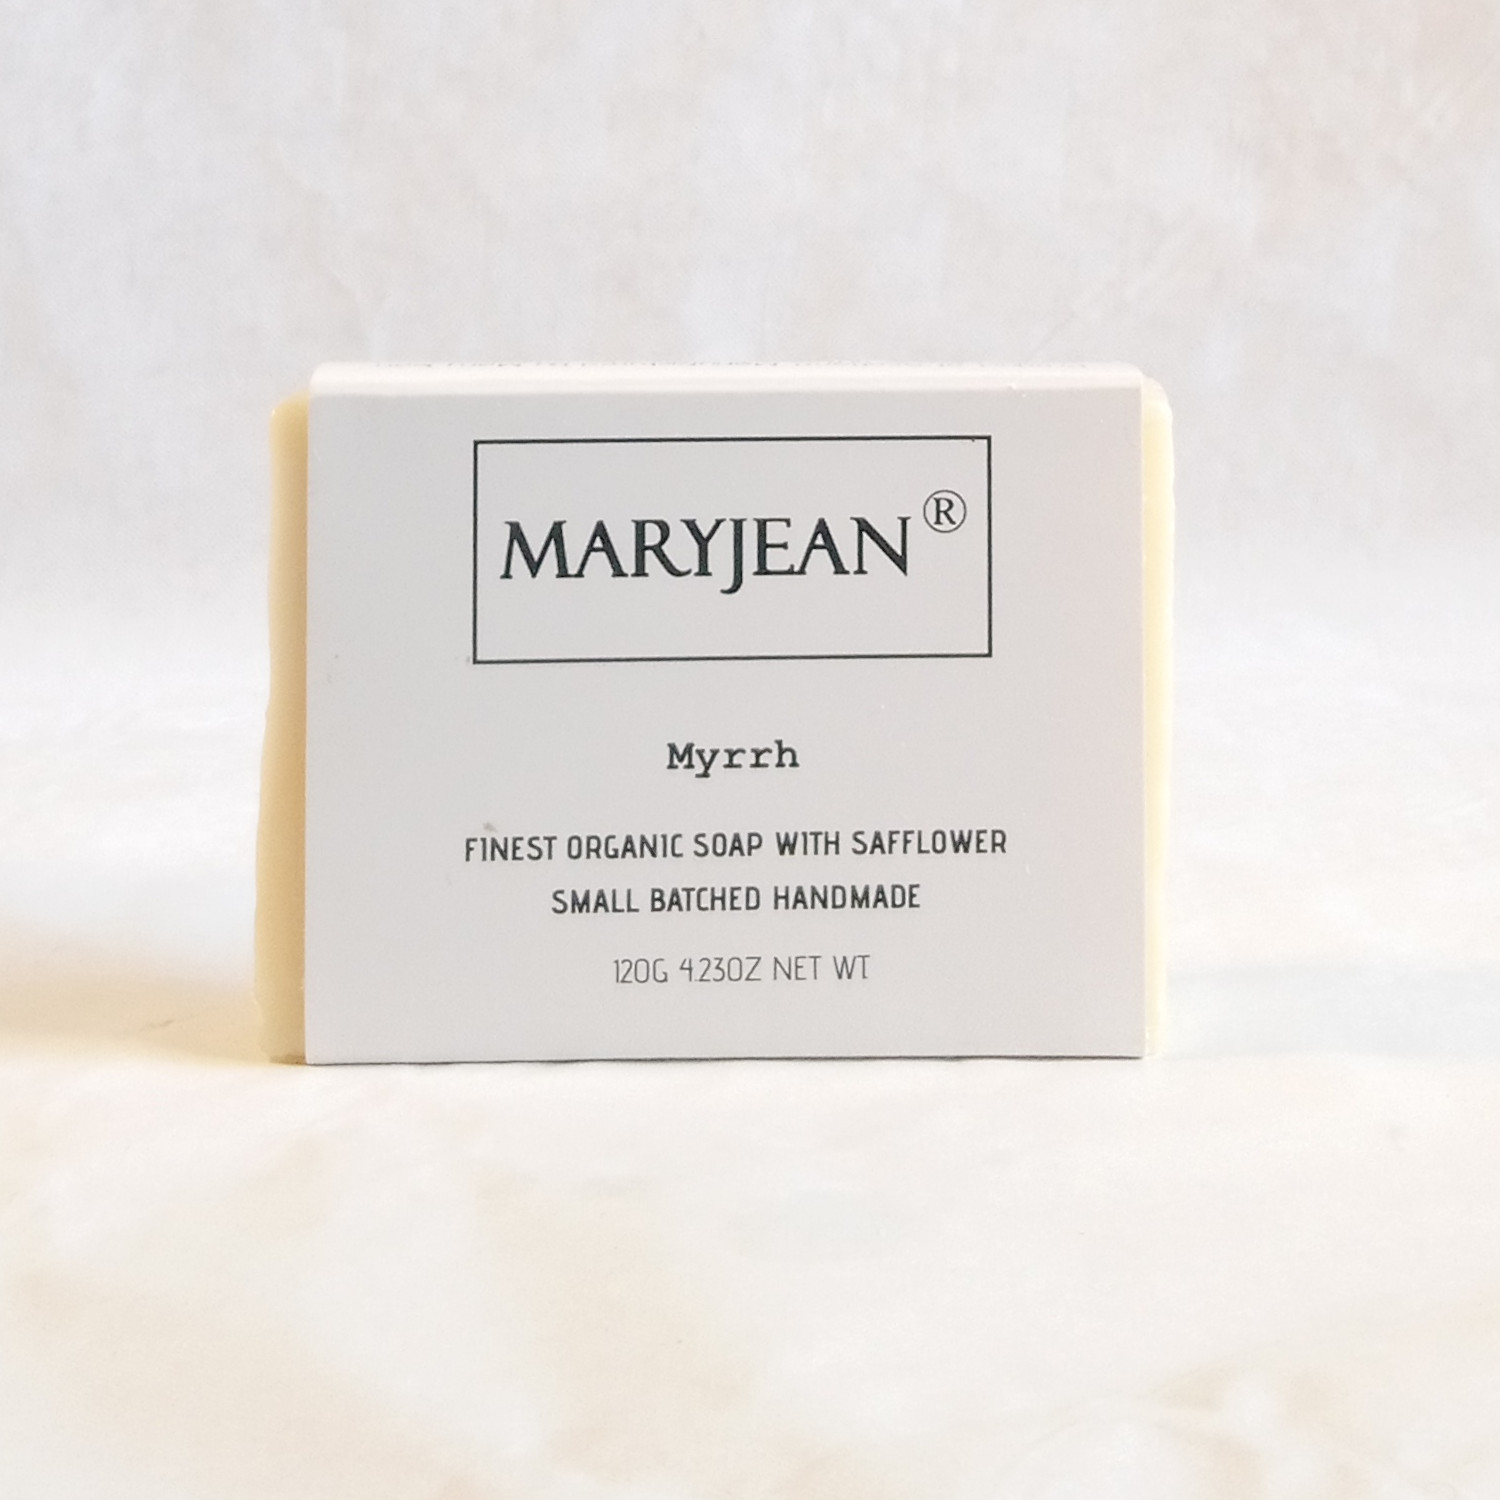 Best care of the health of your skin for outdoor weathering and environmental stress prevents dryness and cell damage Organic Scottish Myrrh Soap Handmade With Safflower